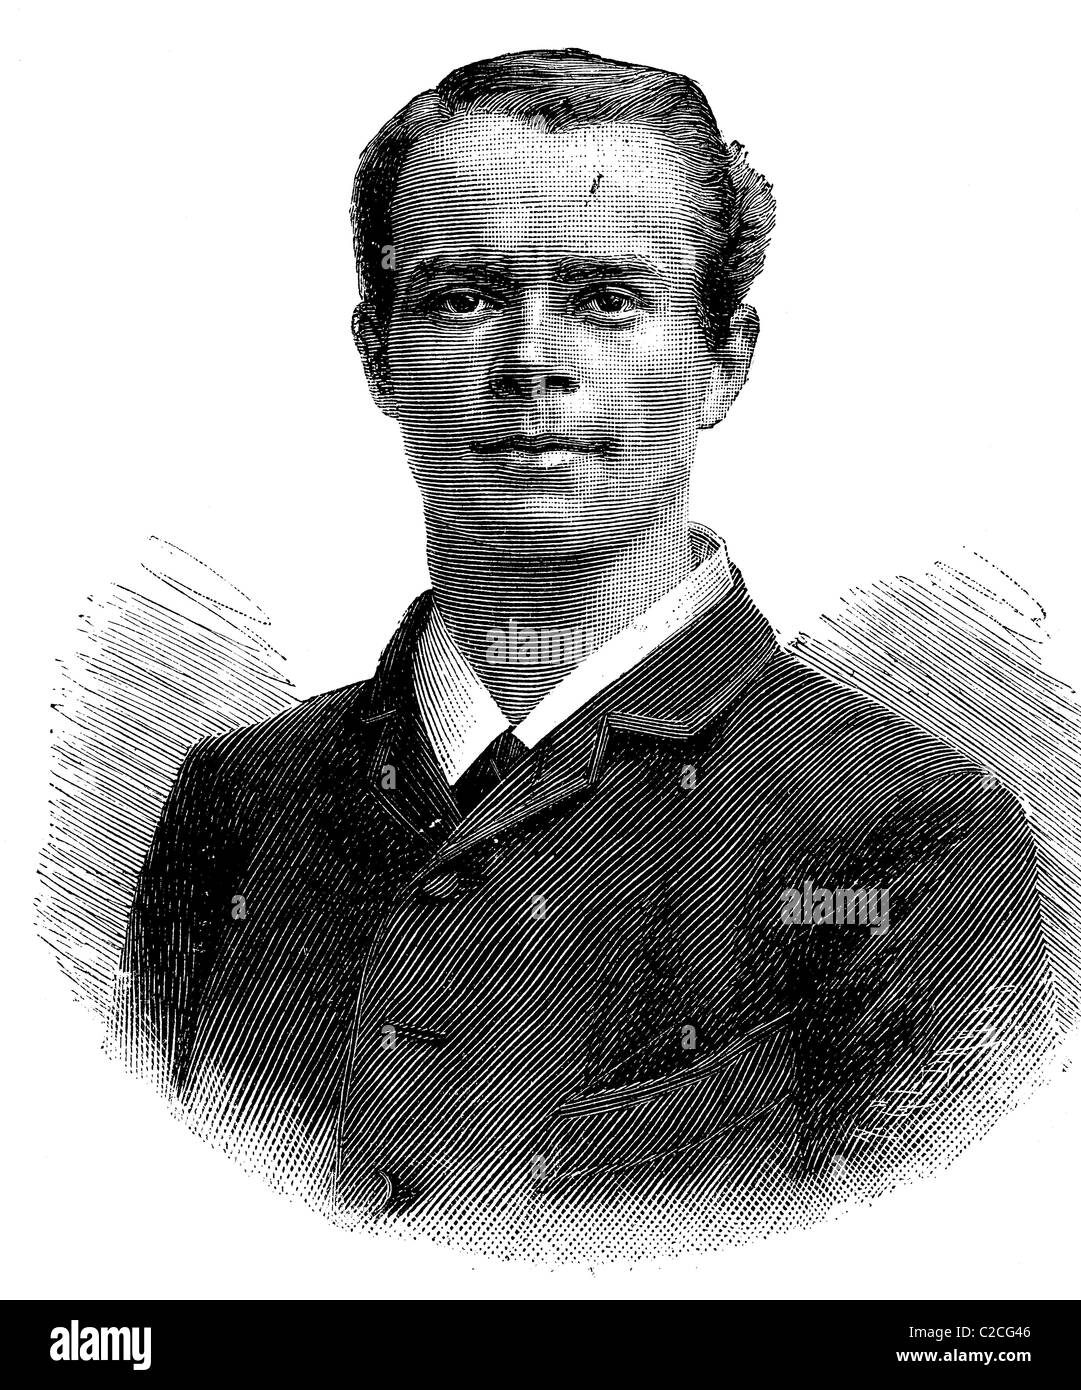 Otto Peitz, one of the winners of the distance march Vienna - Berlin 1893, historical illustration circa 1893 - Stock Image